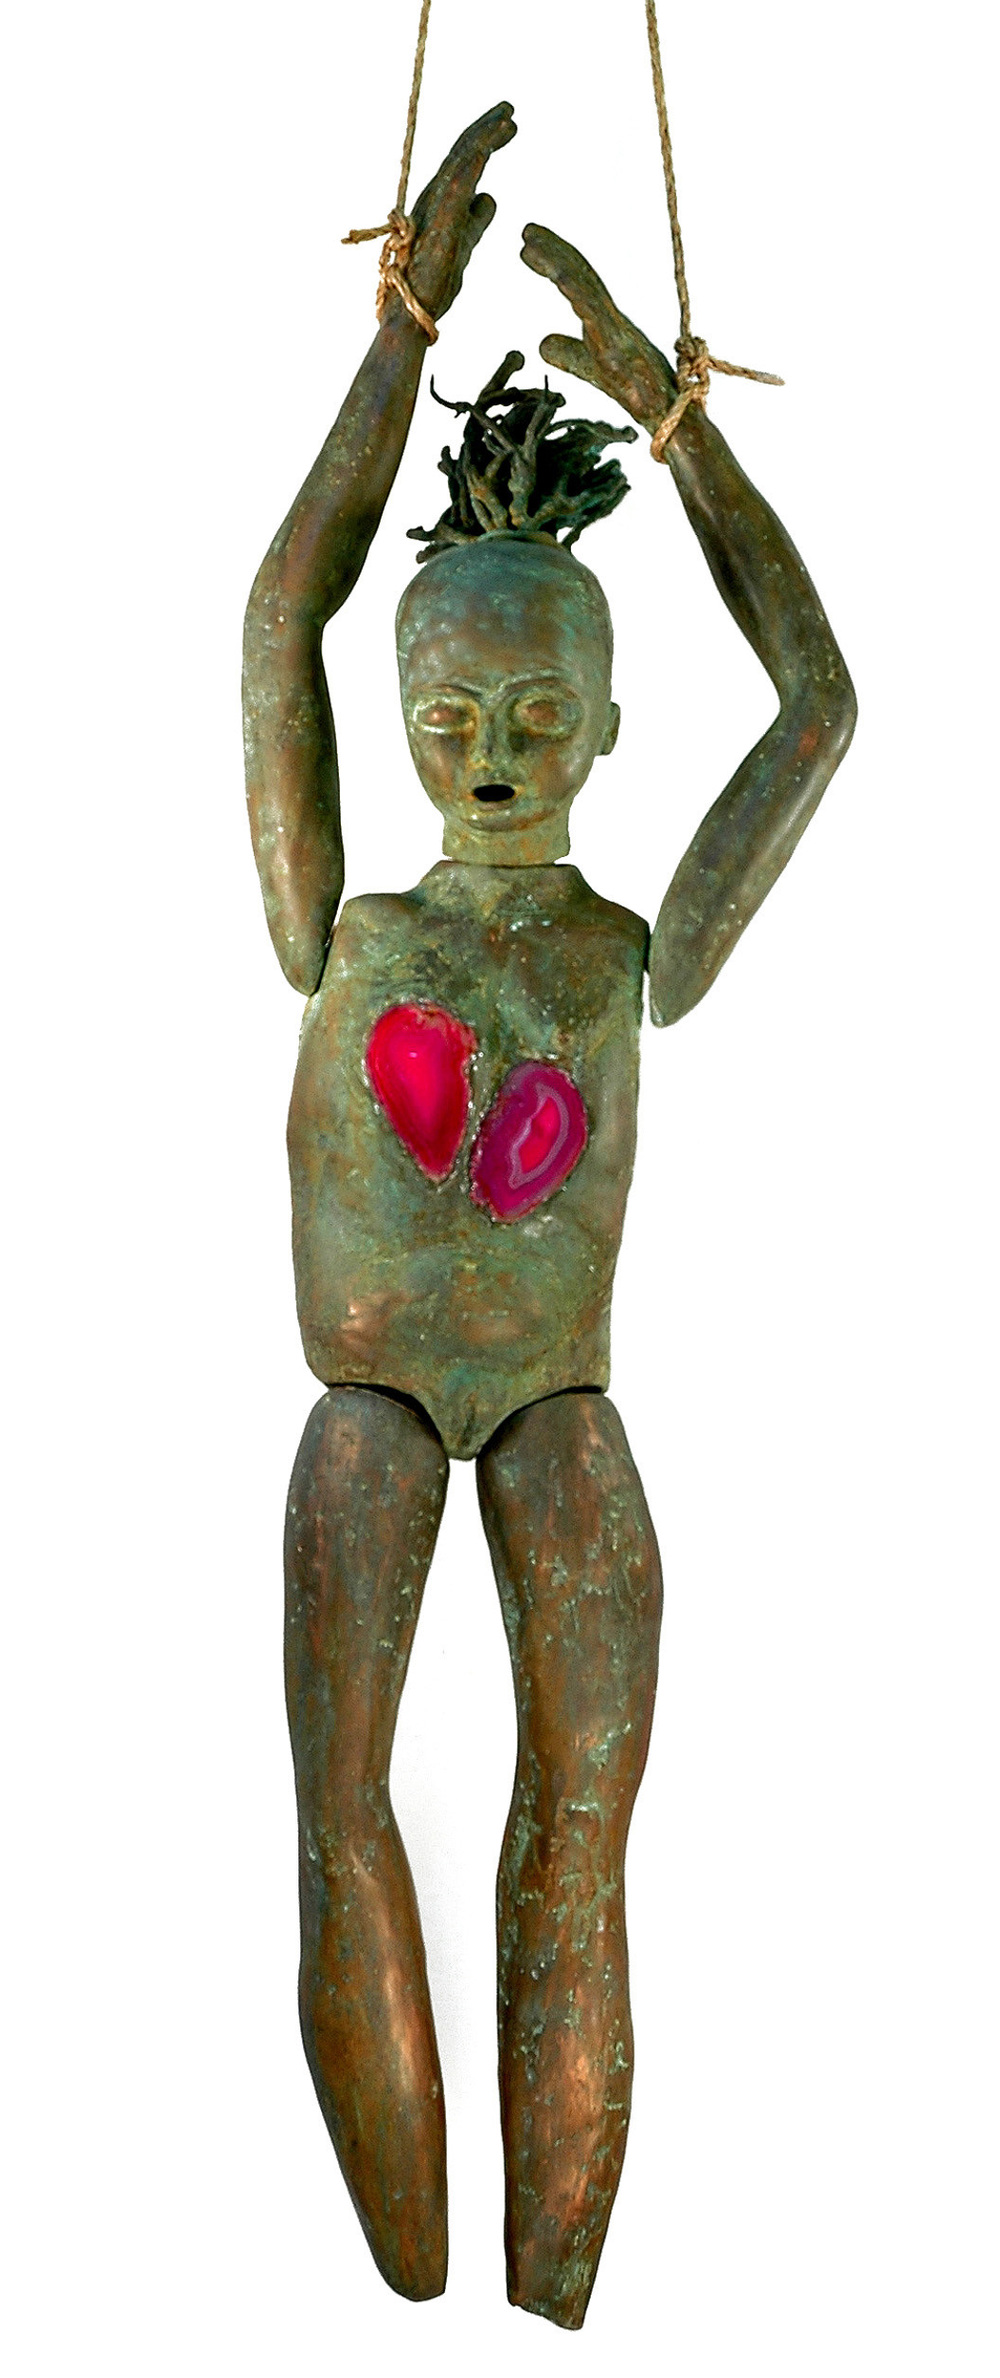 Puppet (front view), 2003-5